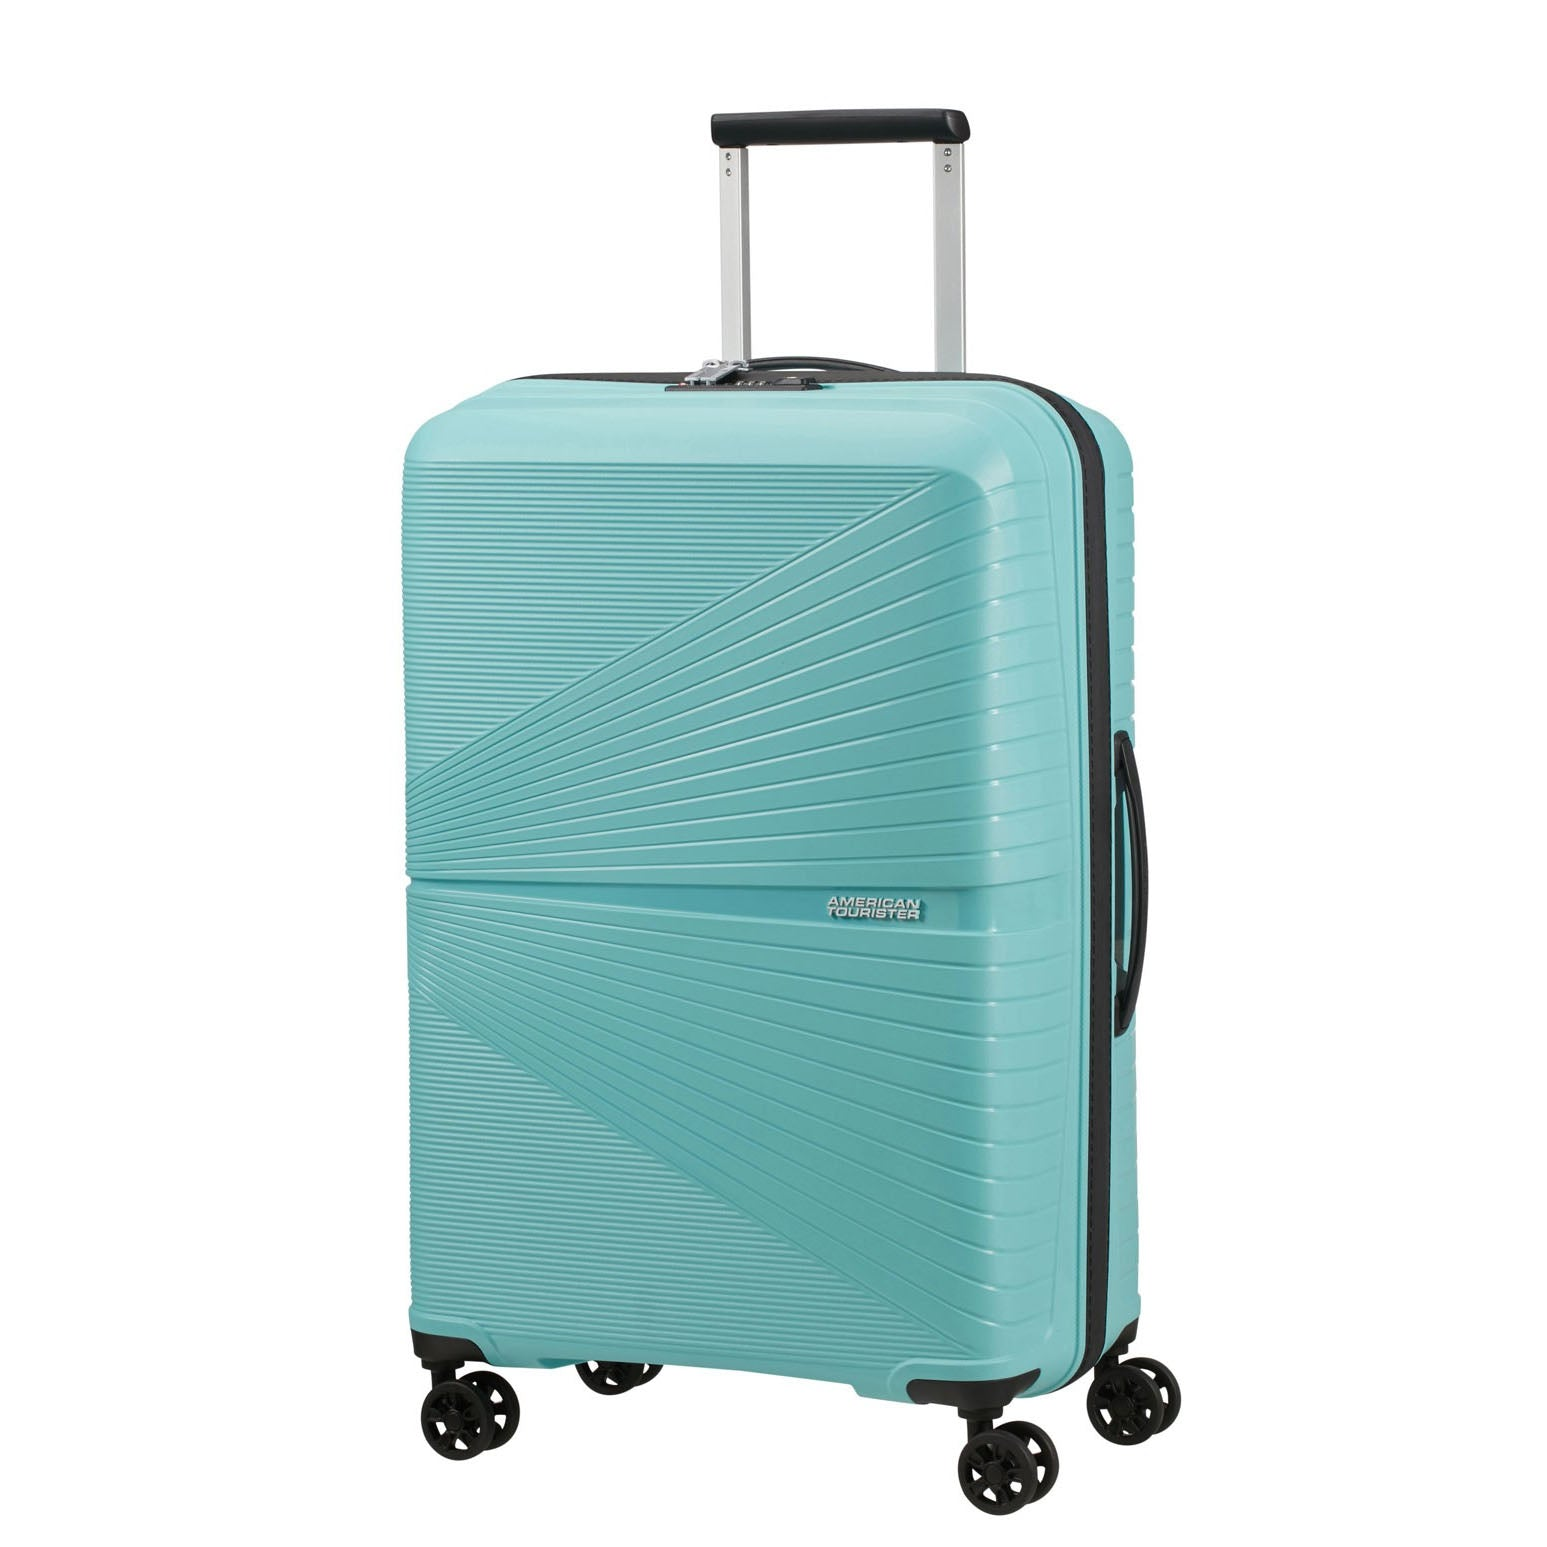 American Tourister Airconic 67cm Medium Suitcase